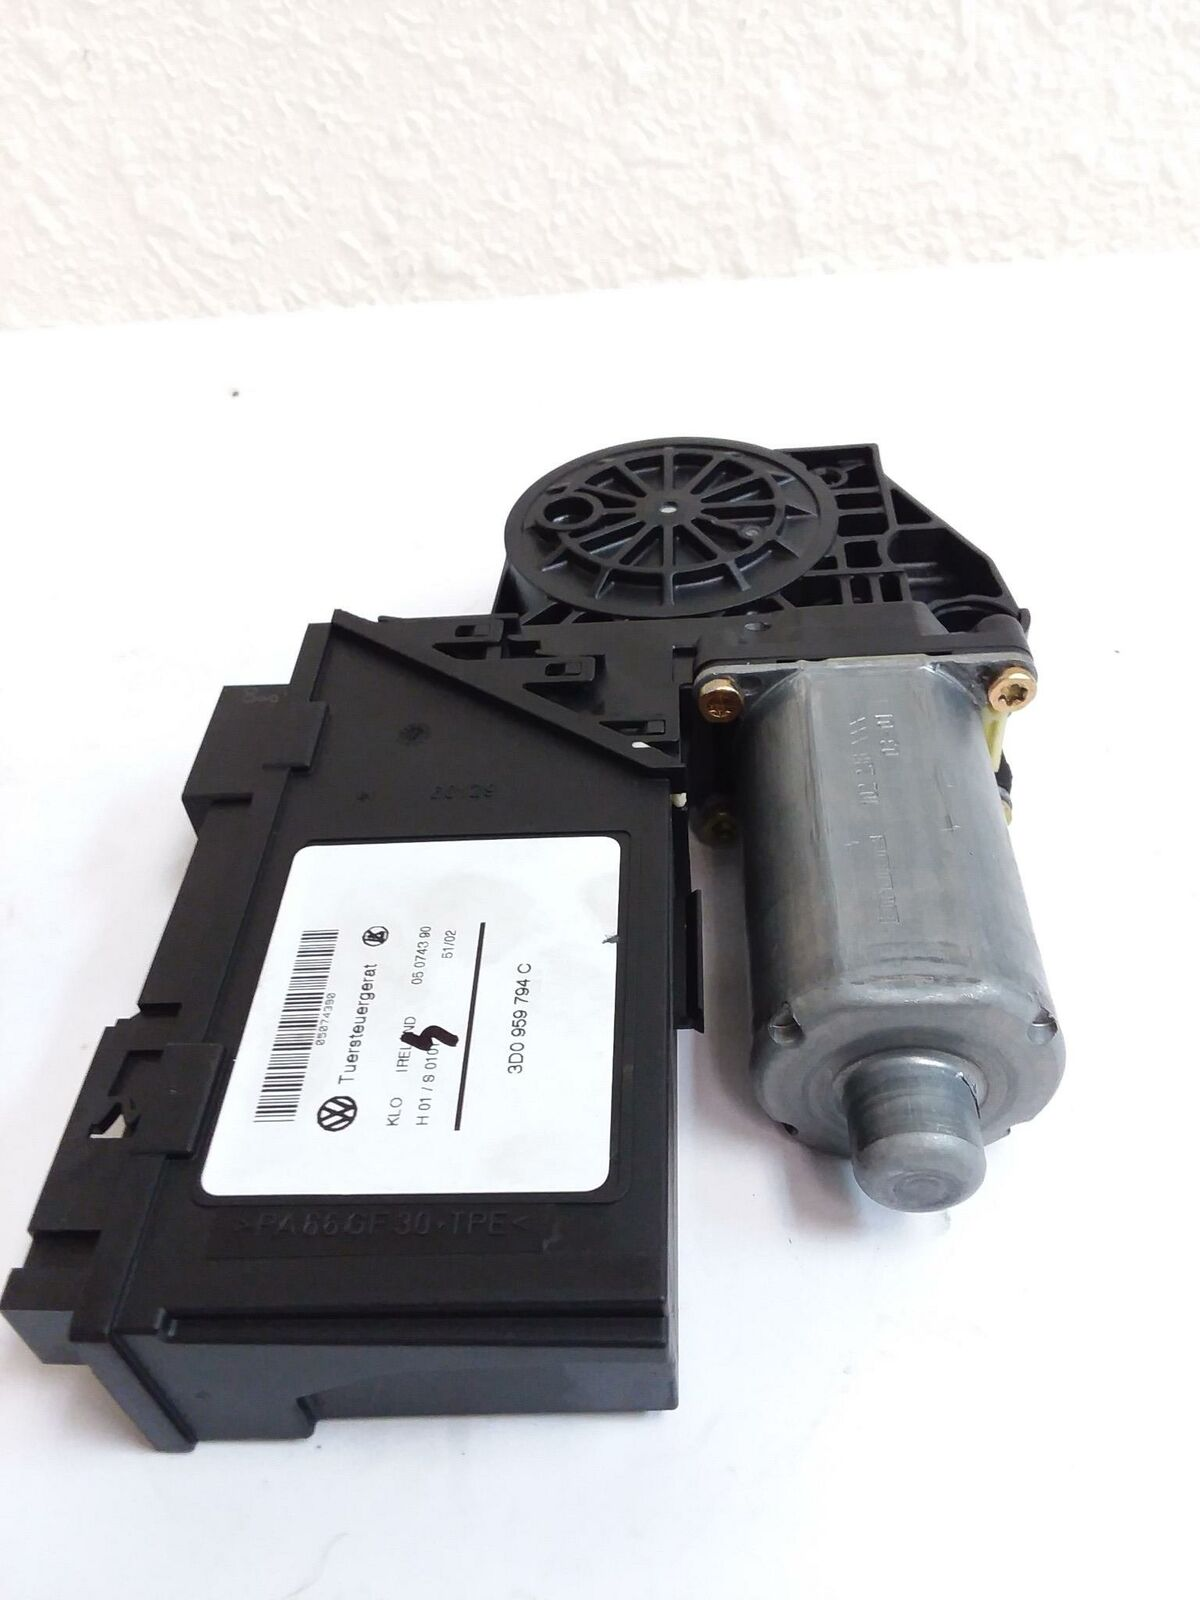 03-06 Porsche Cayenne S Rear Right Drivers side Window /Glass Regulator Motor - Click Receive Auto Parts